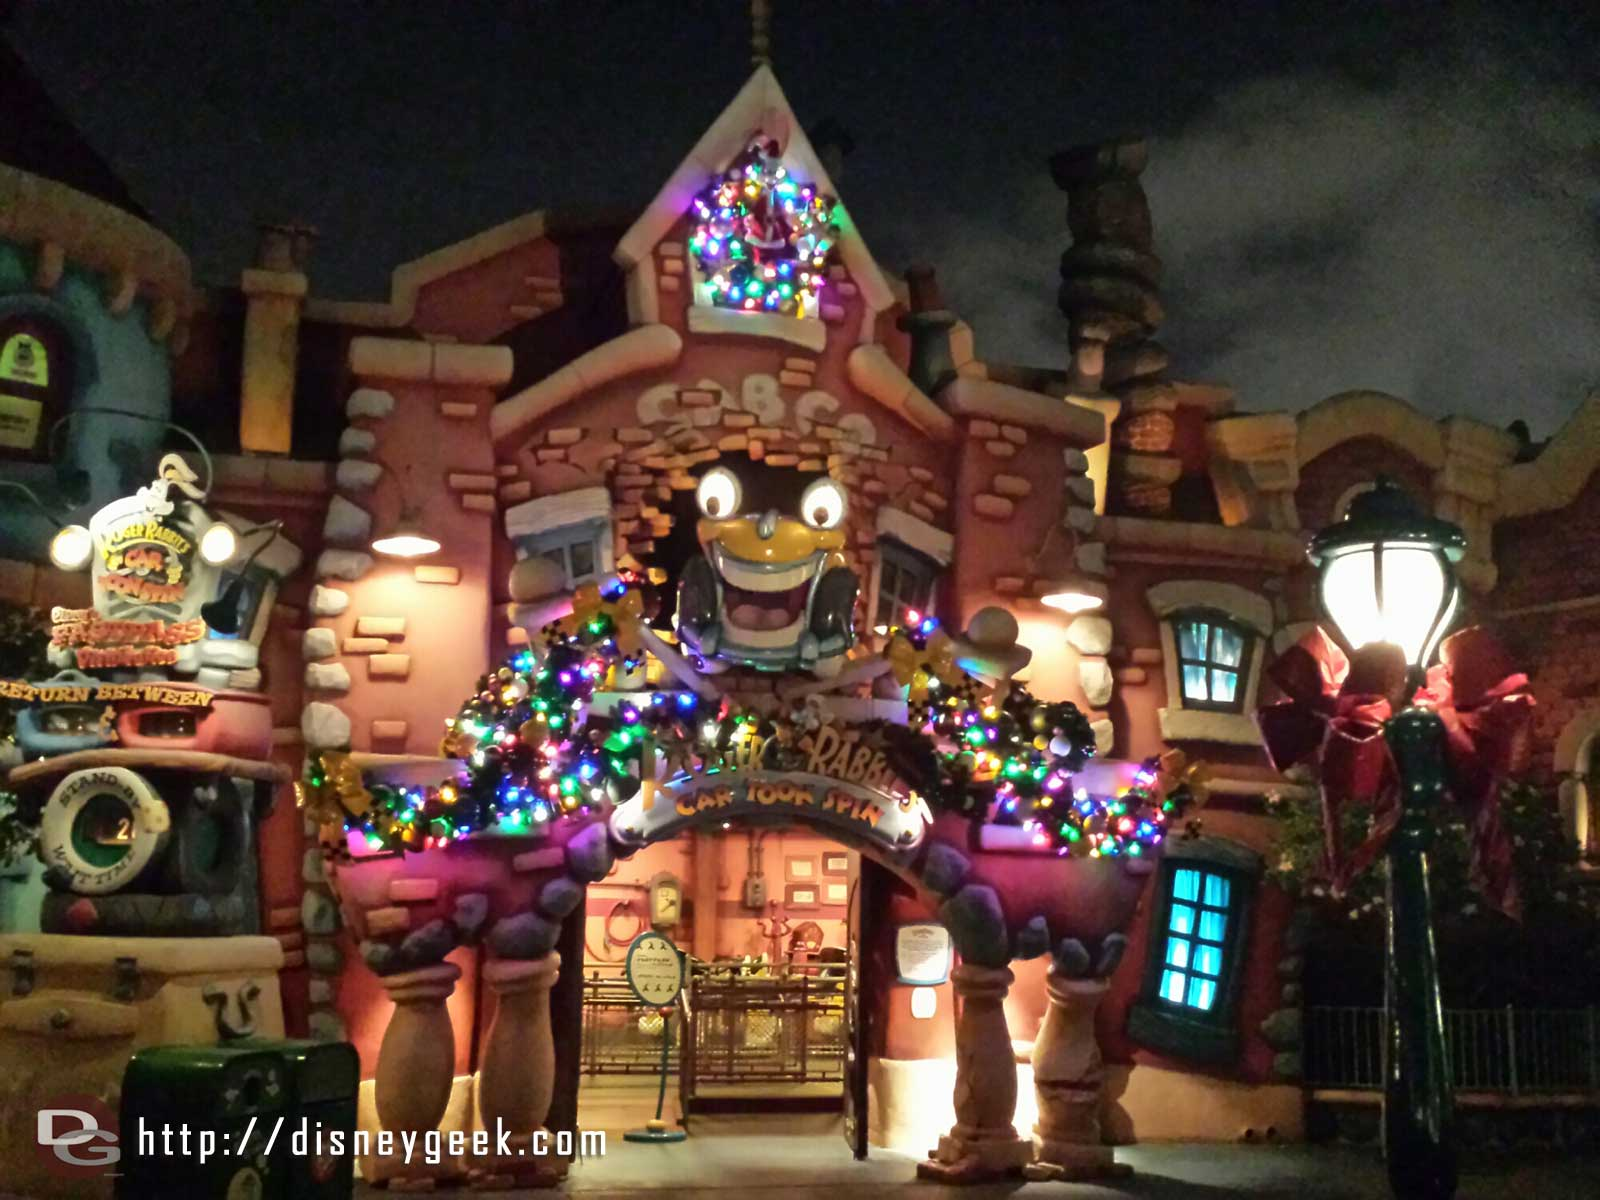 Roger Rabbit Car Toon Spin Christmas lights #Disneyland #ToonTown